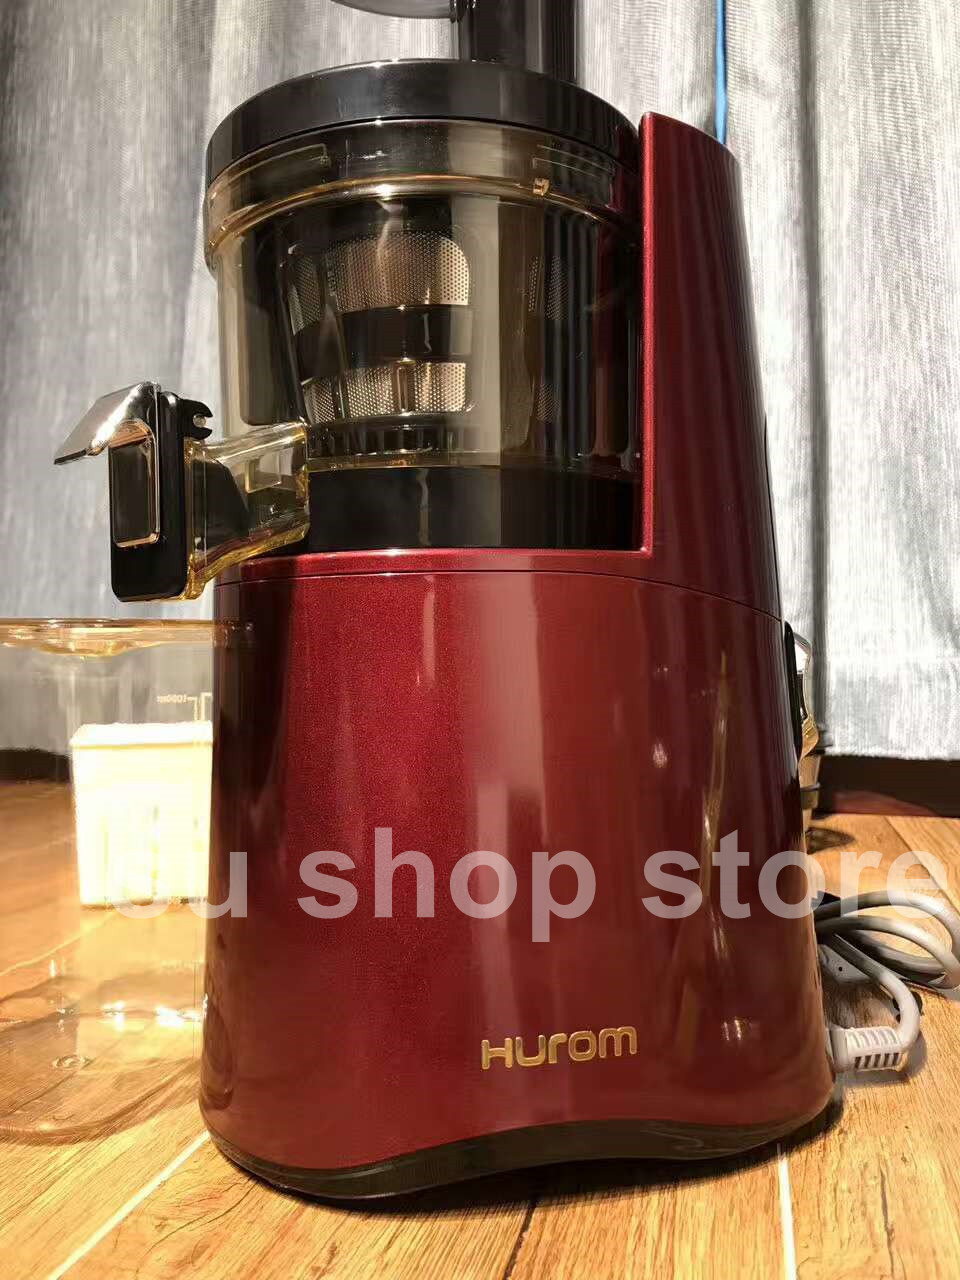 2017 new 3rd generation hurom juicer hu 9026wn slow juicer make 2017 new 3rd generation hurom juicer hu 9026wn slow juicer make ice cream juicer in juicers from home appliances on aliexpress alibaba group ccuart Gallery